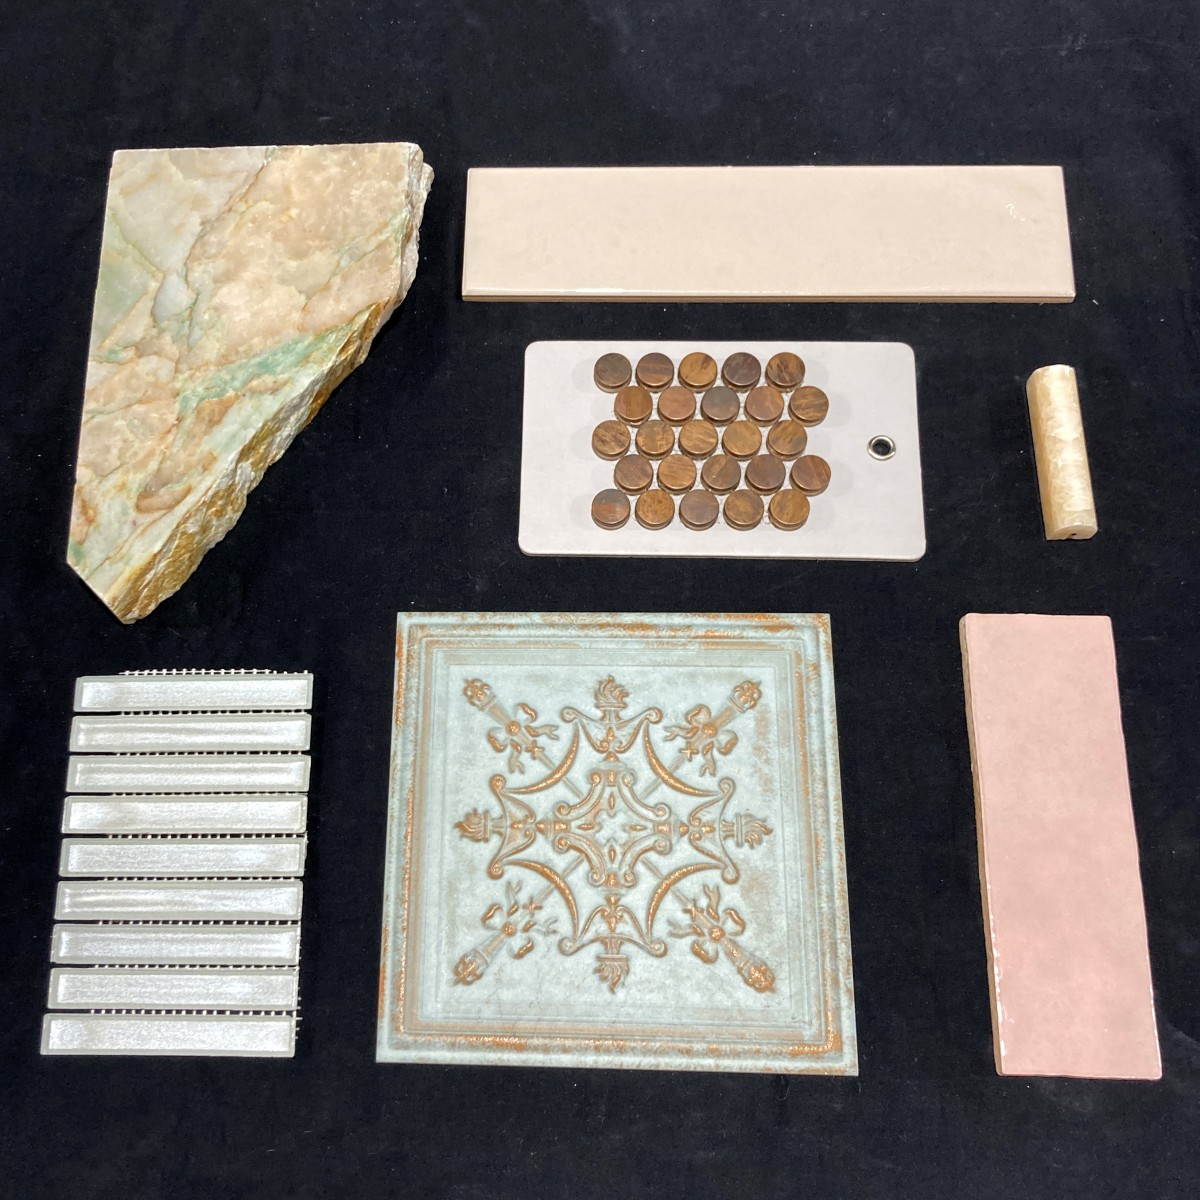 Alexandrina Royalty, design inspiration for tile walls and floors made by Granite Division from Tyler Texas